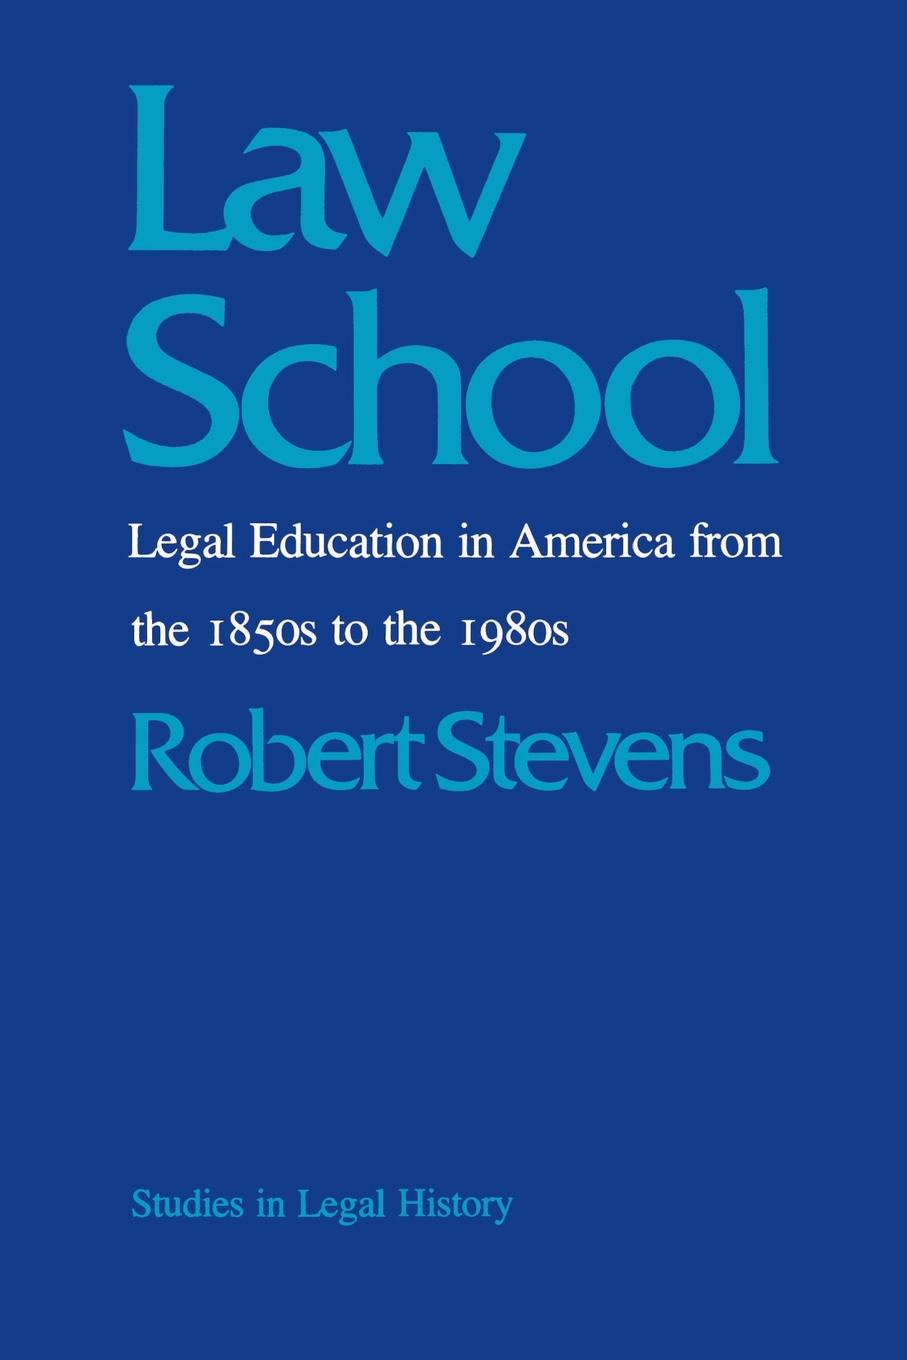 Robert Bocking Stevens Law School. Legal Education in America from the 1850s to the 1980s burdastyle sewing vintage modern mastering iconic looks from the 1920s to 1980s